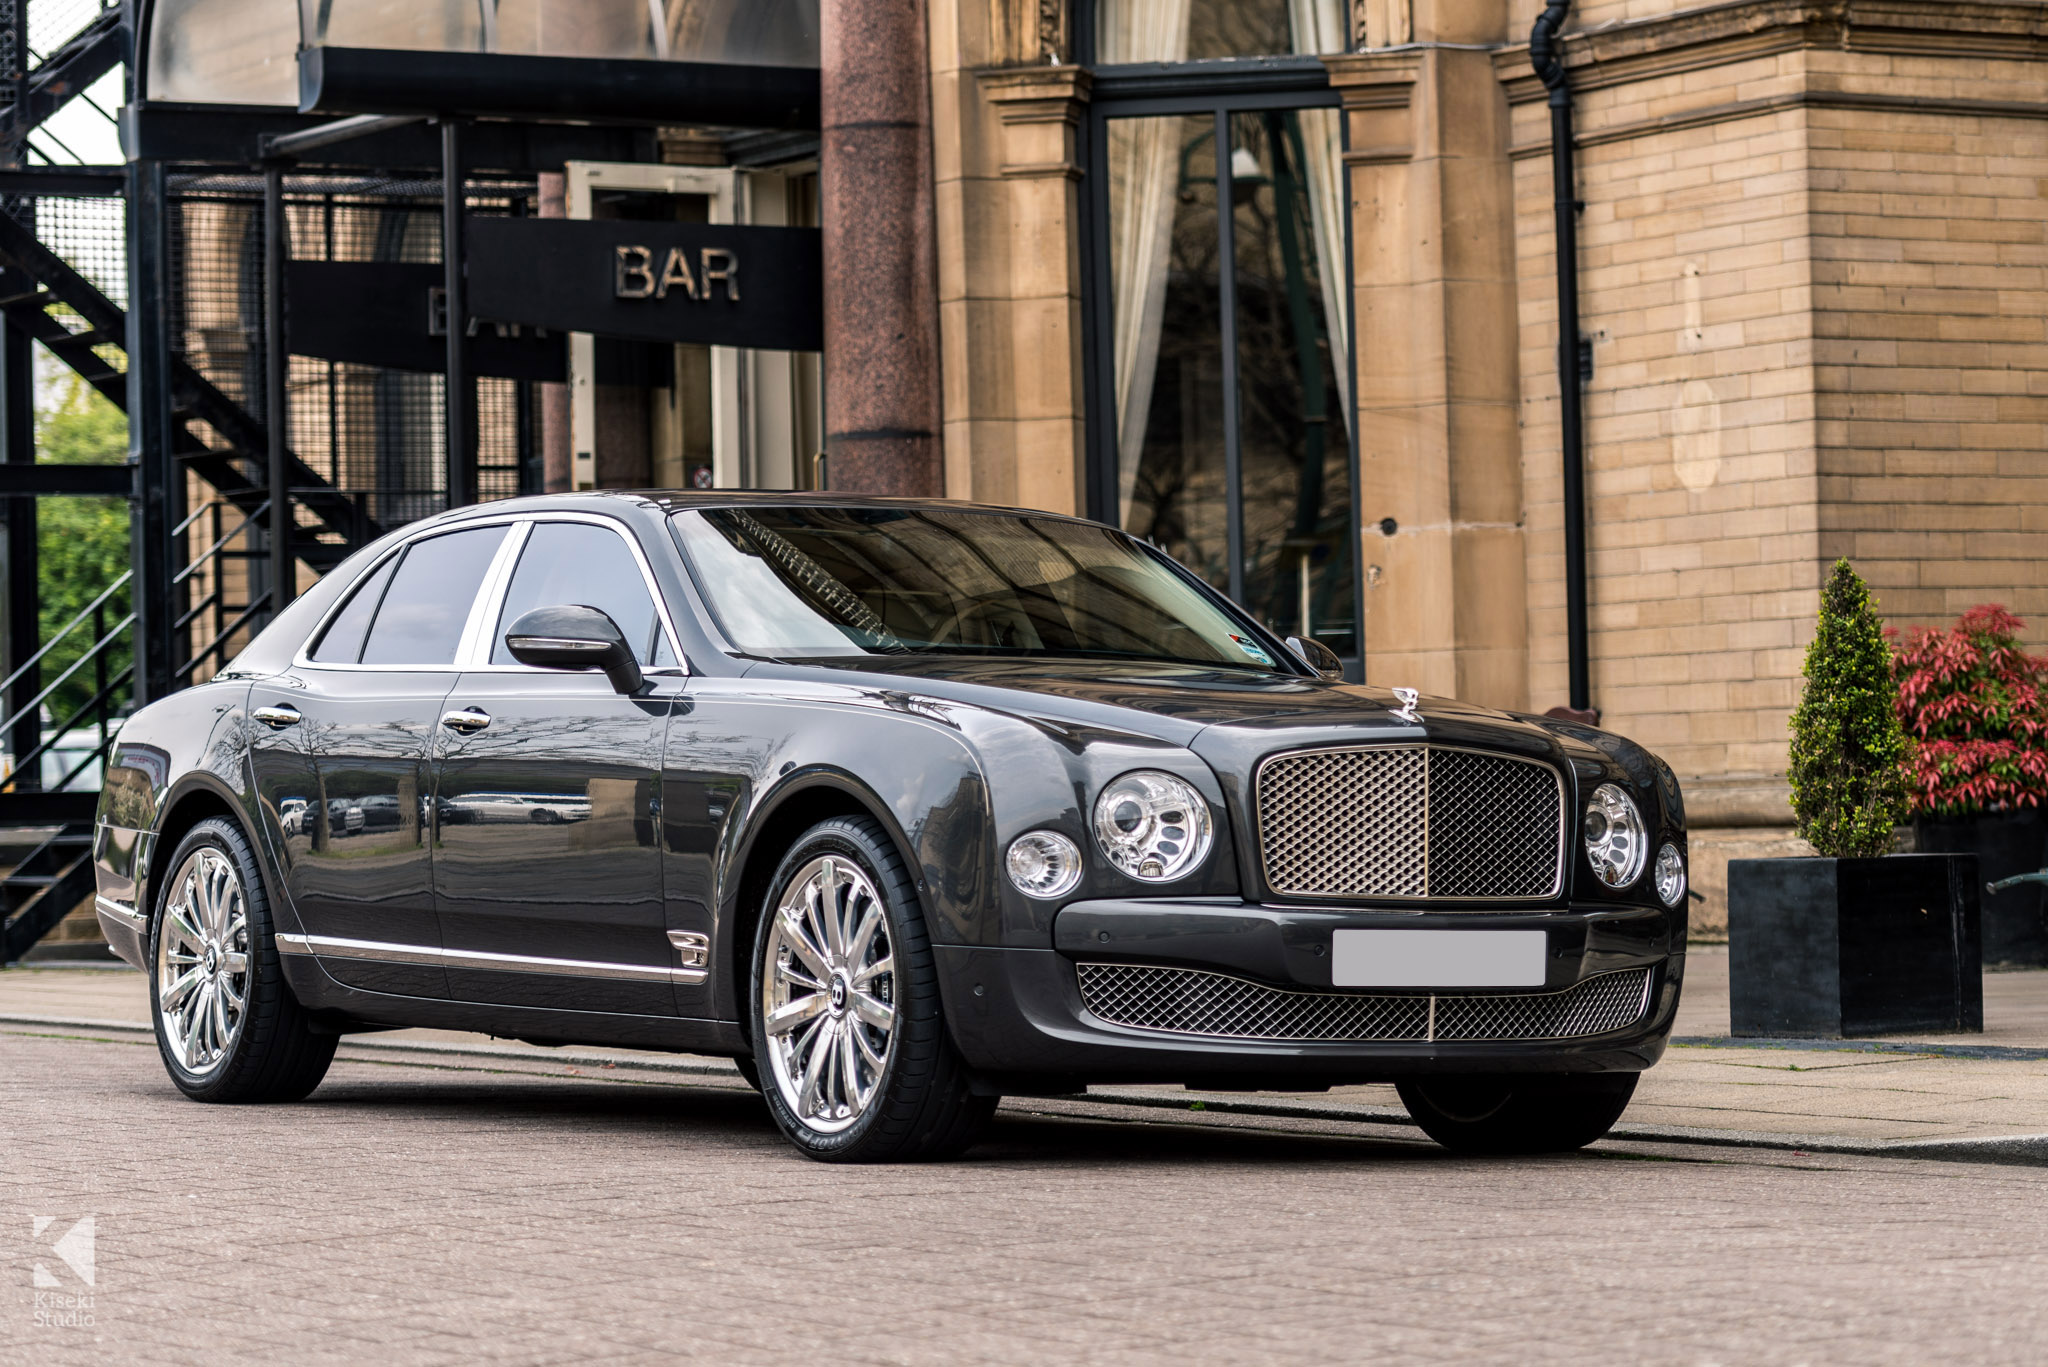 Bentley Mulsanne in grey